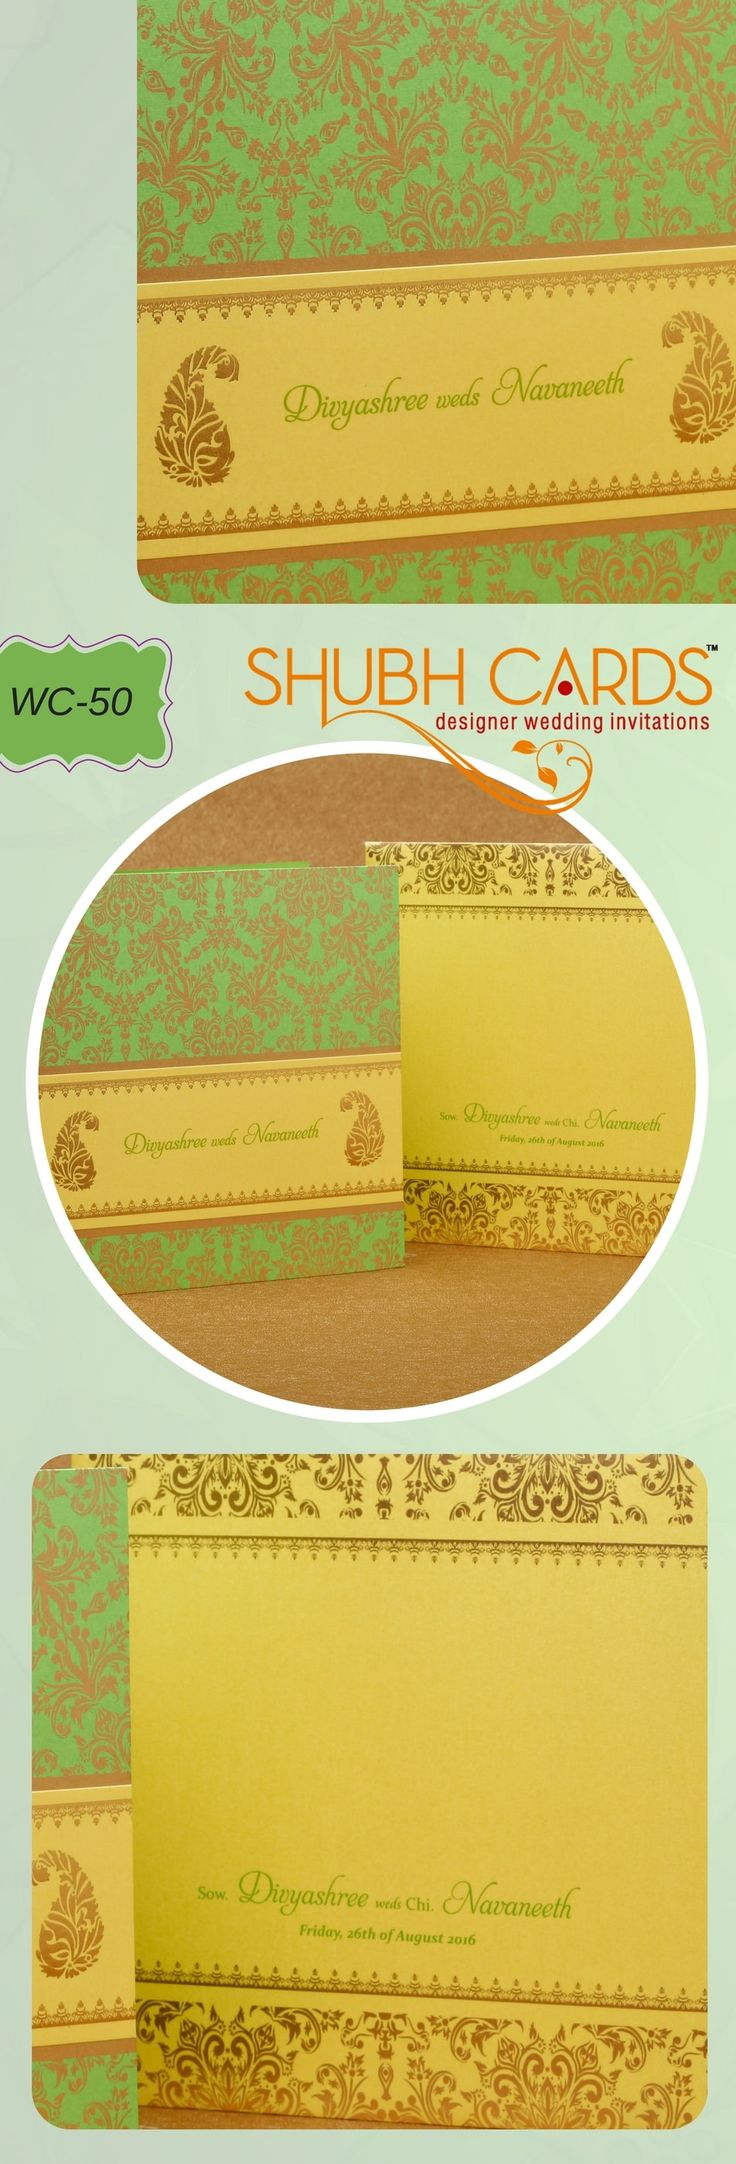 A perfect mix of parrot green background for the floral designs in gold makes this #WeddingInvitation unique. The other half of the #Invite has two paisley designs in gold enclosing the names of the bride and the groom.  The #WeddingCard's cover in full bright yellow with its flowery borders in gold gives, richness to the #card.  #DesignerWeddgingInvitation #WeddingInvite #LuxuryWeddingCards #ShubhCards